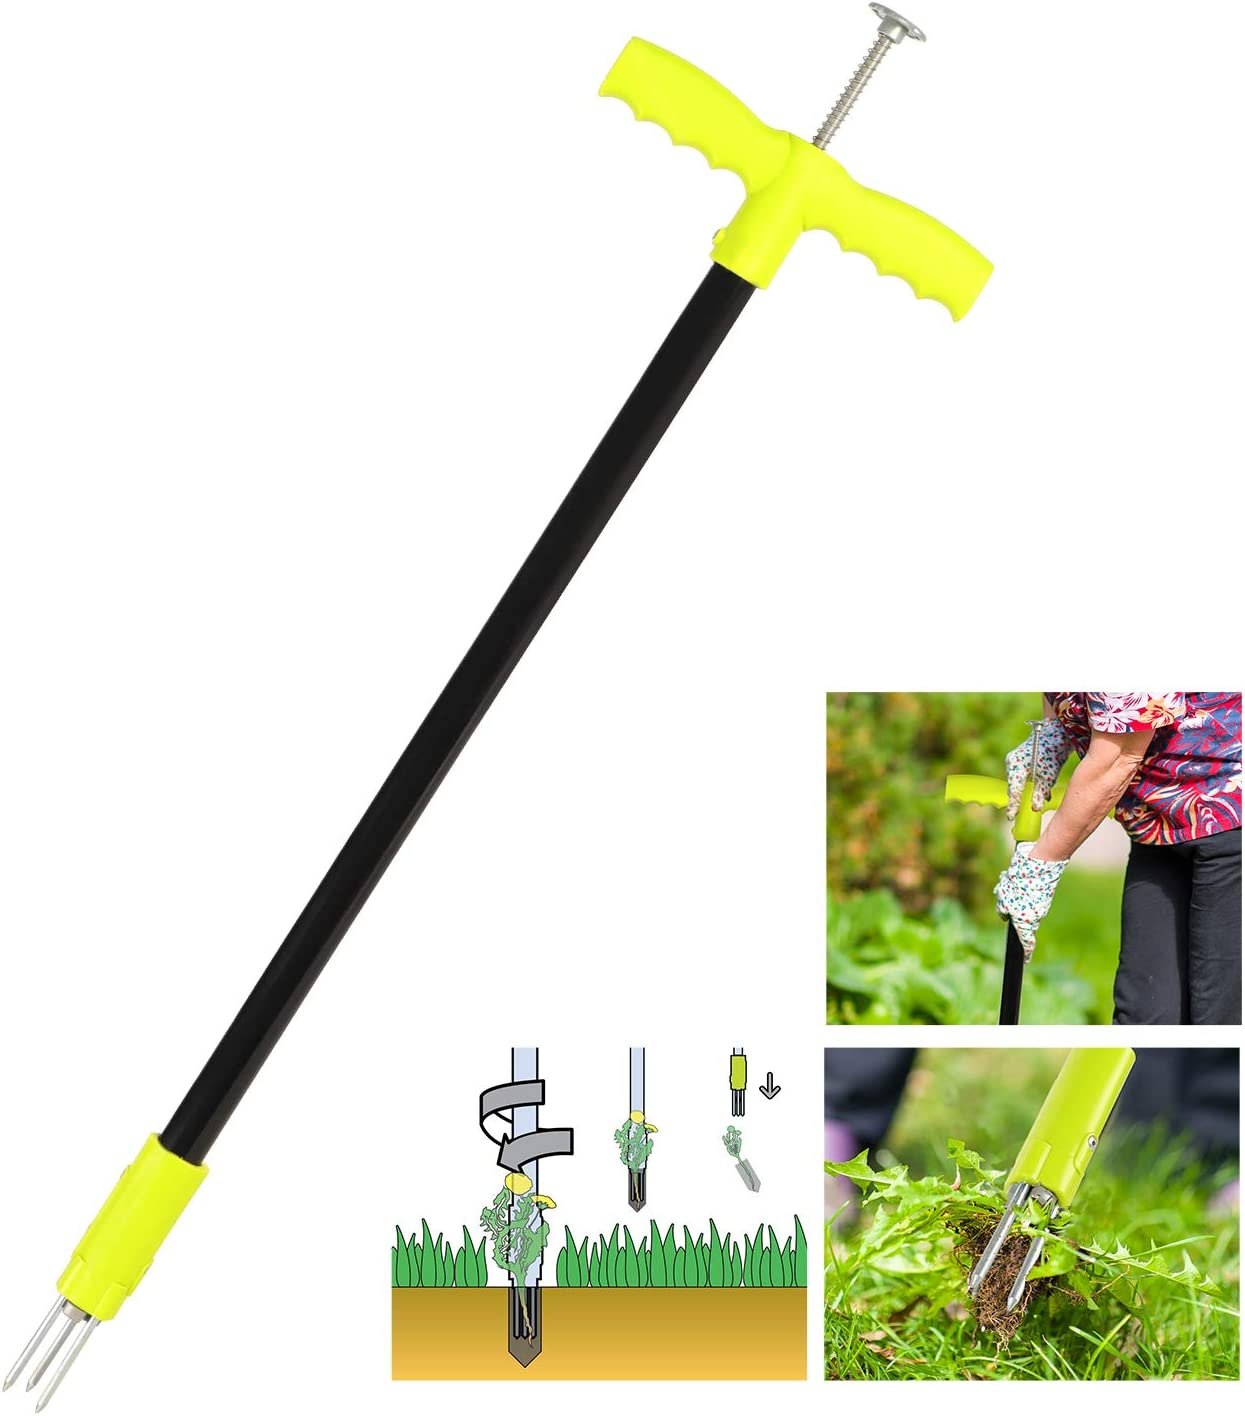 ORIENTOOLS Weed Puller Manual Weeder Twist Dandelion Puller Weed Extractor with Steel Handle and 3 Claws, Stand-up Garden Lawn Easy Root Remover Grabber Tool, 93cm, Green/Grey